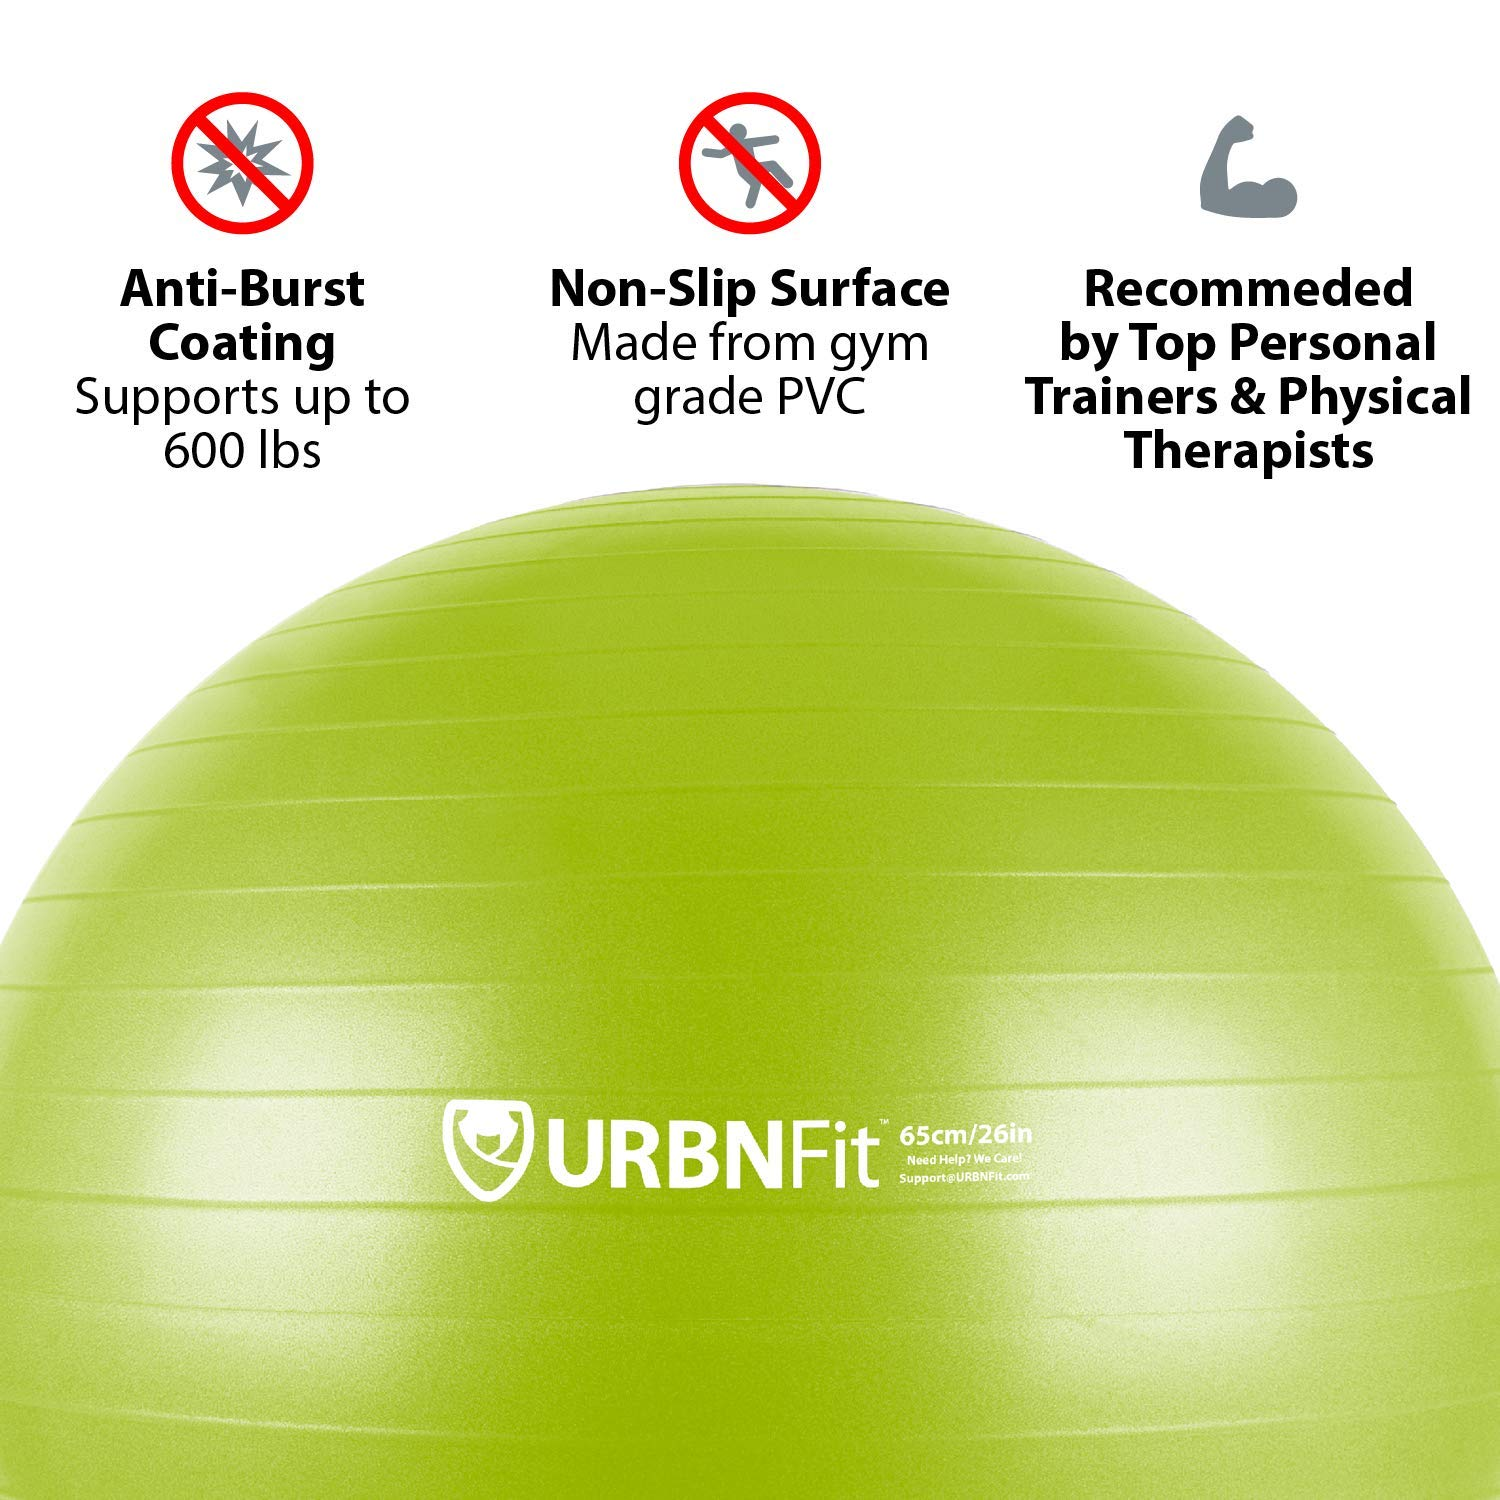 URBNFit Exercise Ball (Multiple Sizes) for Fitness, Stability, Balance & Yoga - Workout Guide & Quick Pump Included - Anit Burst Professional Quality Design (Green, 55CM) by URBNFit (Image #2)